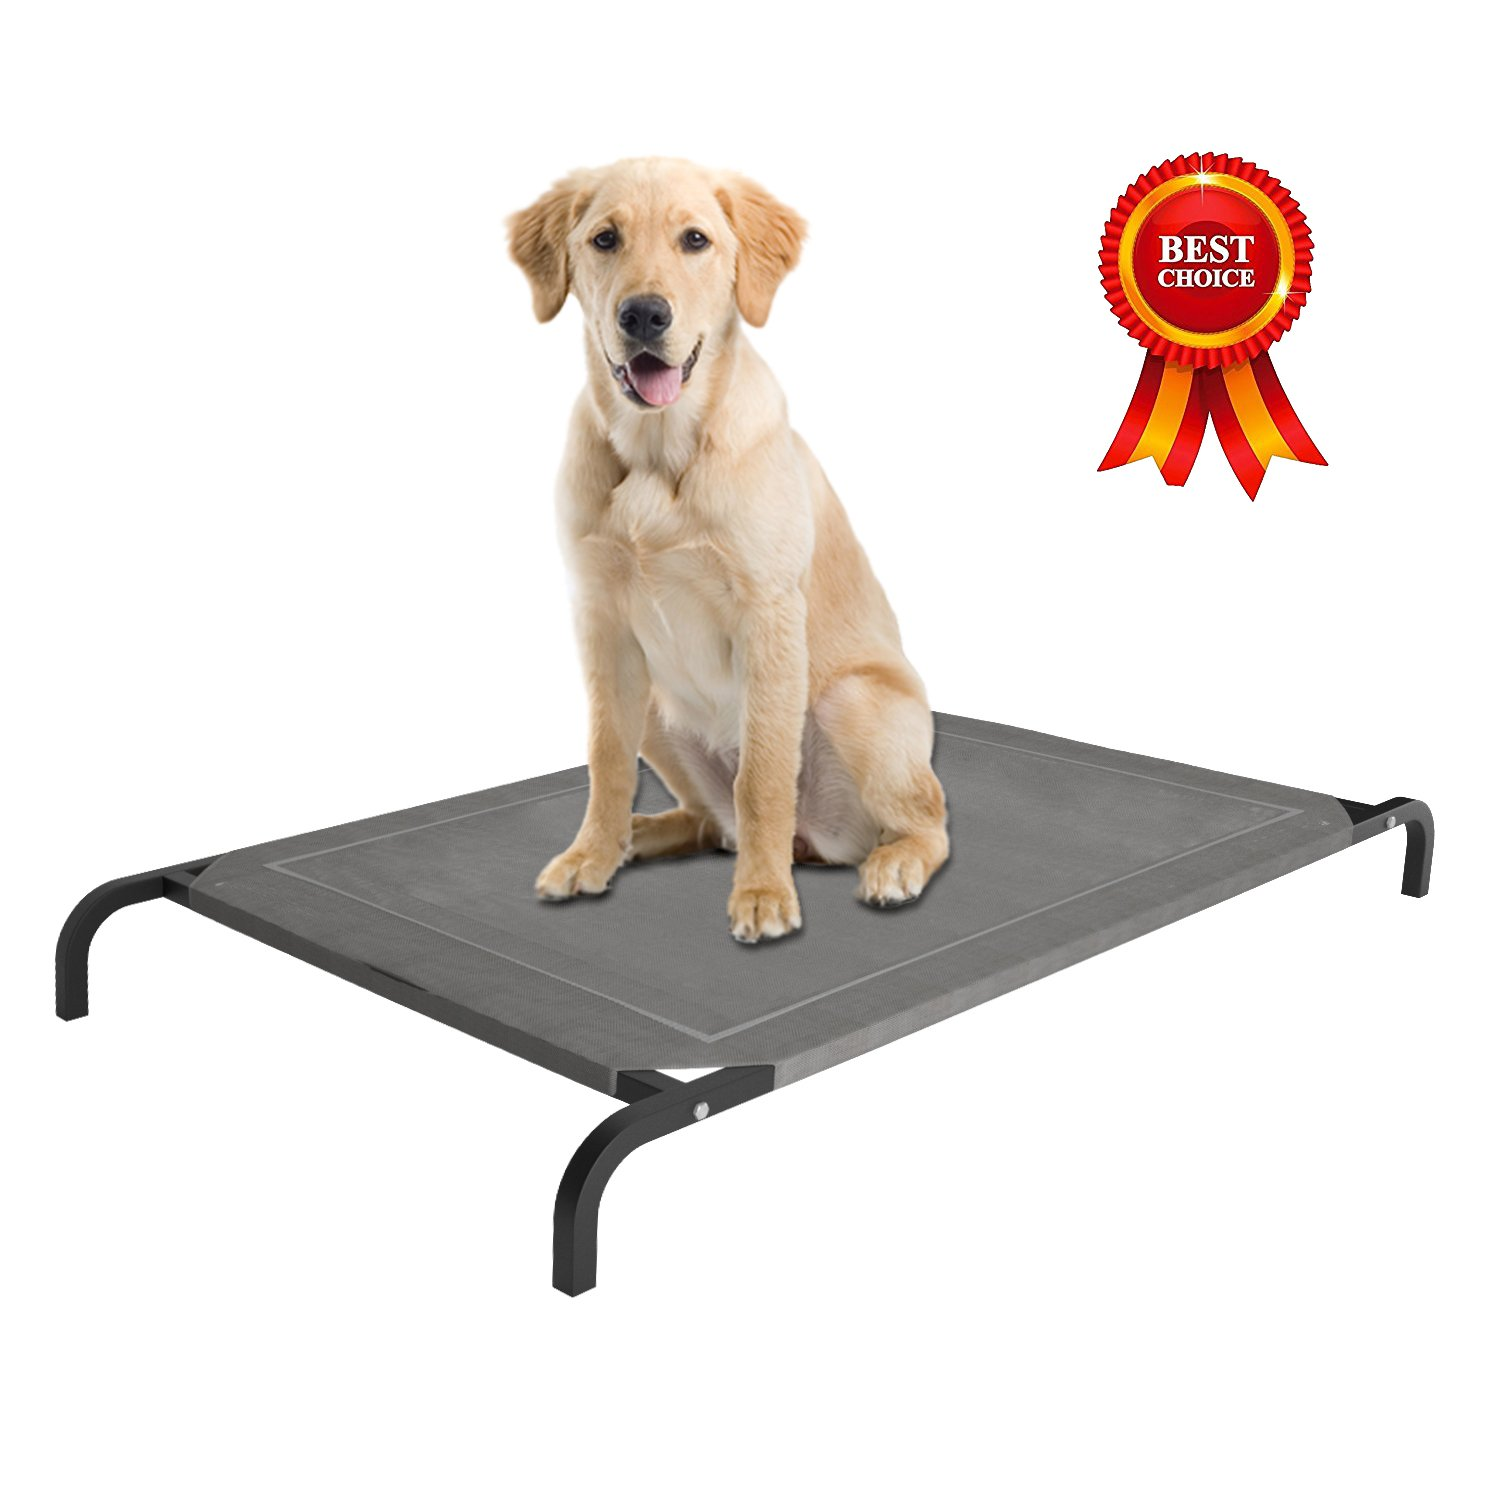 Home Intuition Elevated Pet Bed with Breathable Knitted Fabric (Grey)